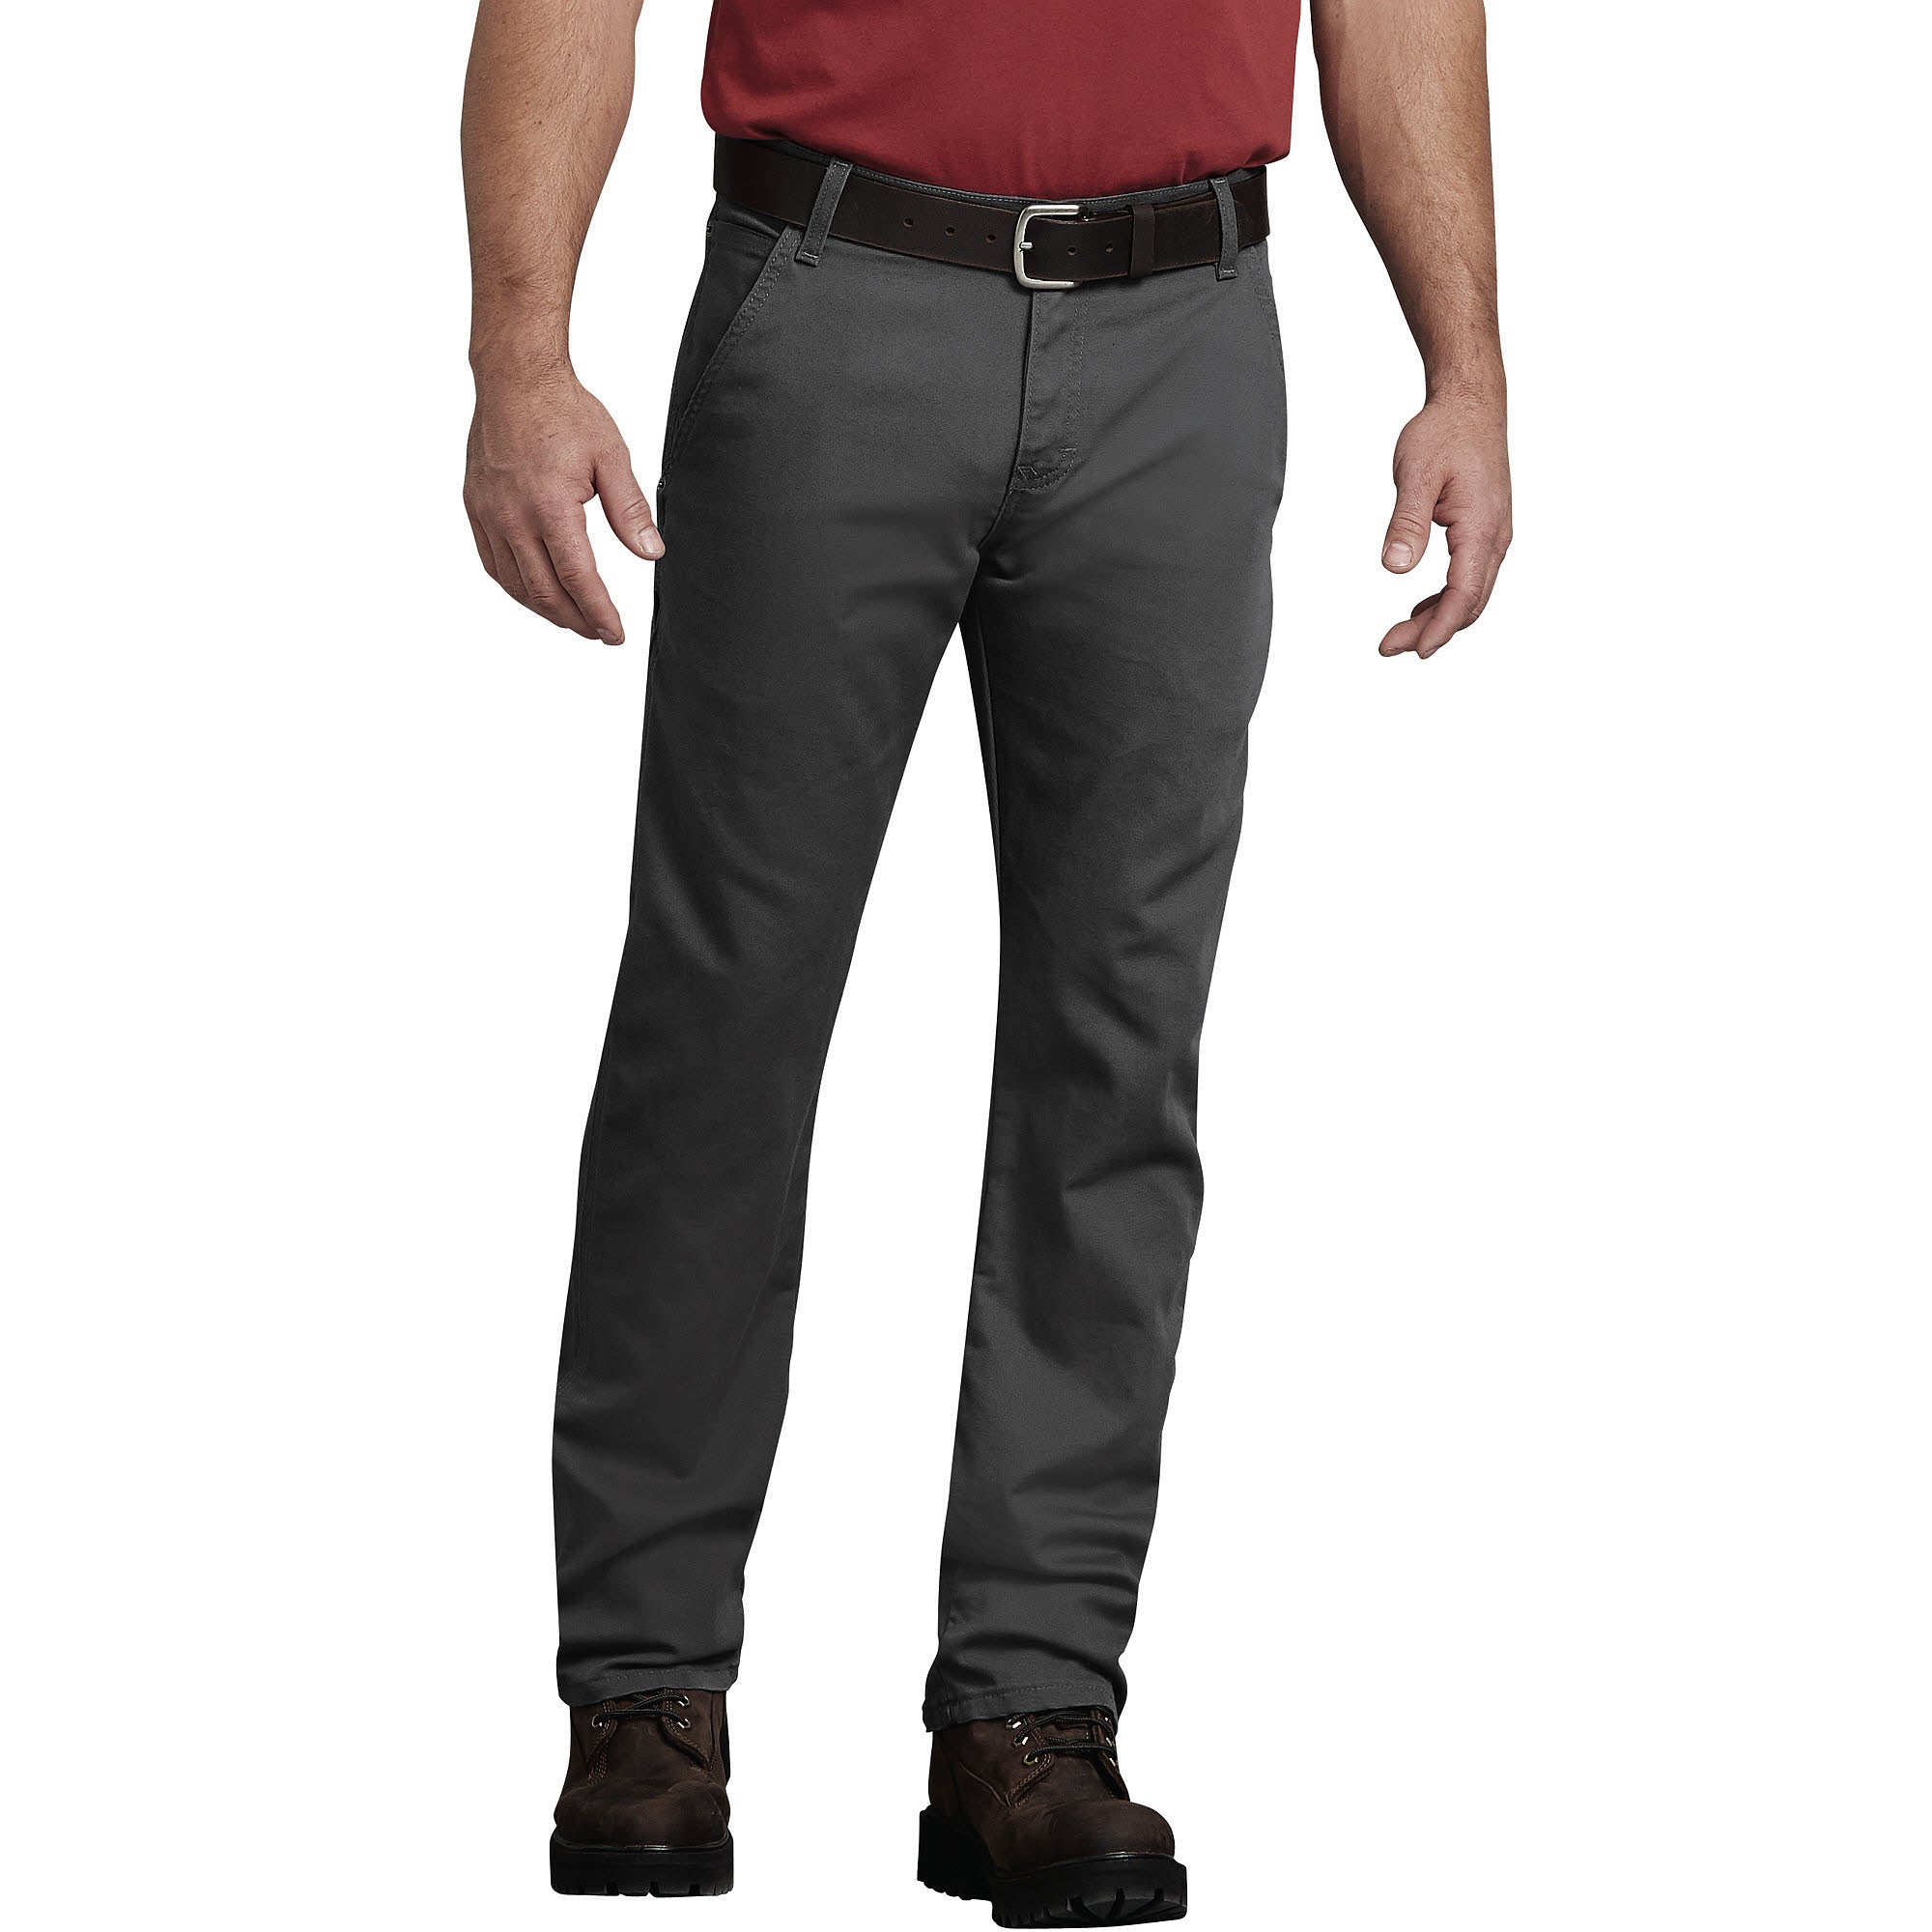 'Dickies' Flex  Tough Max Duck Carpenter Pants - Stonewashed Gray